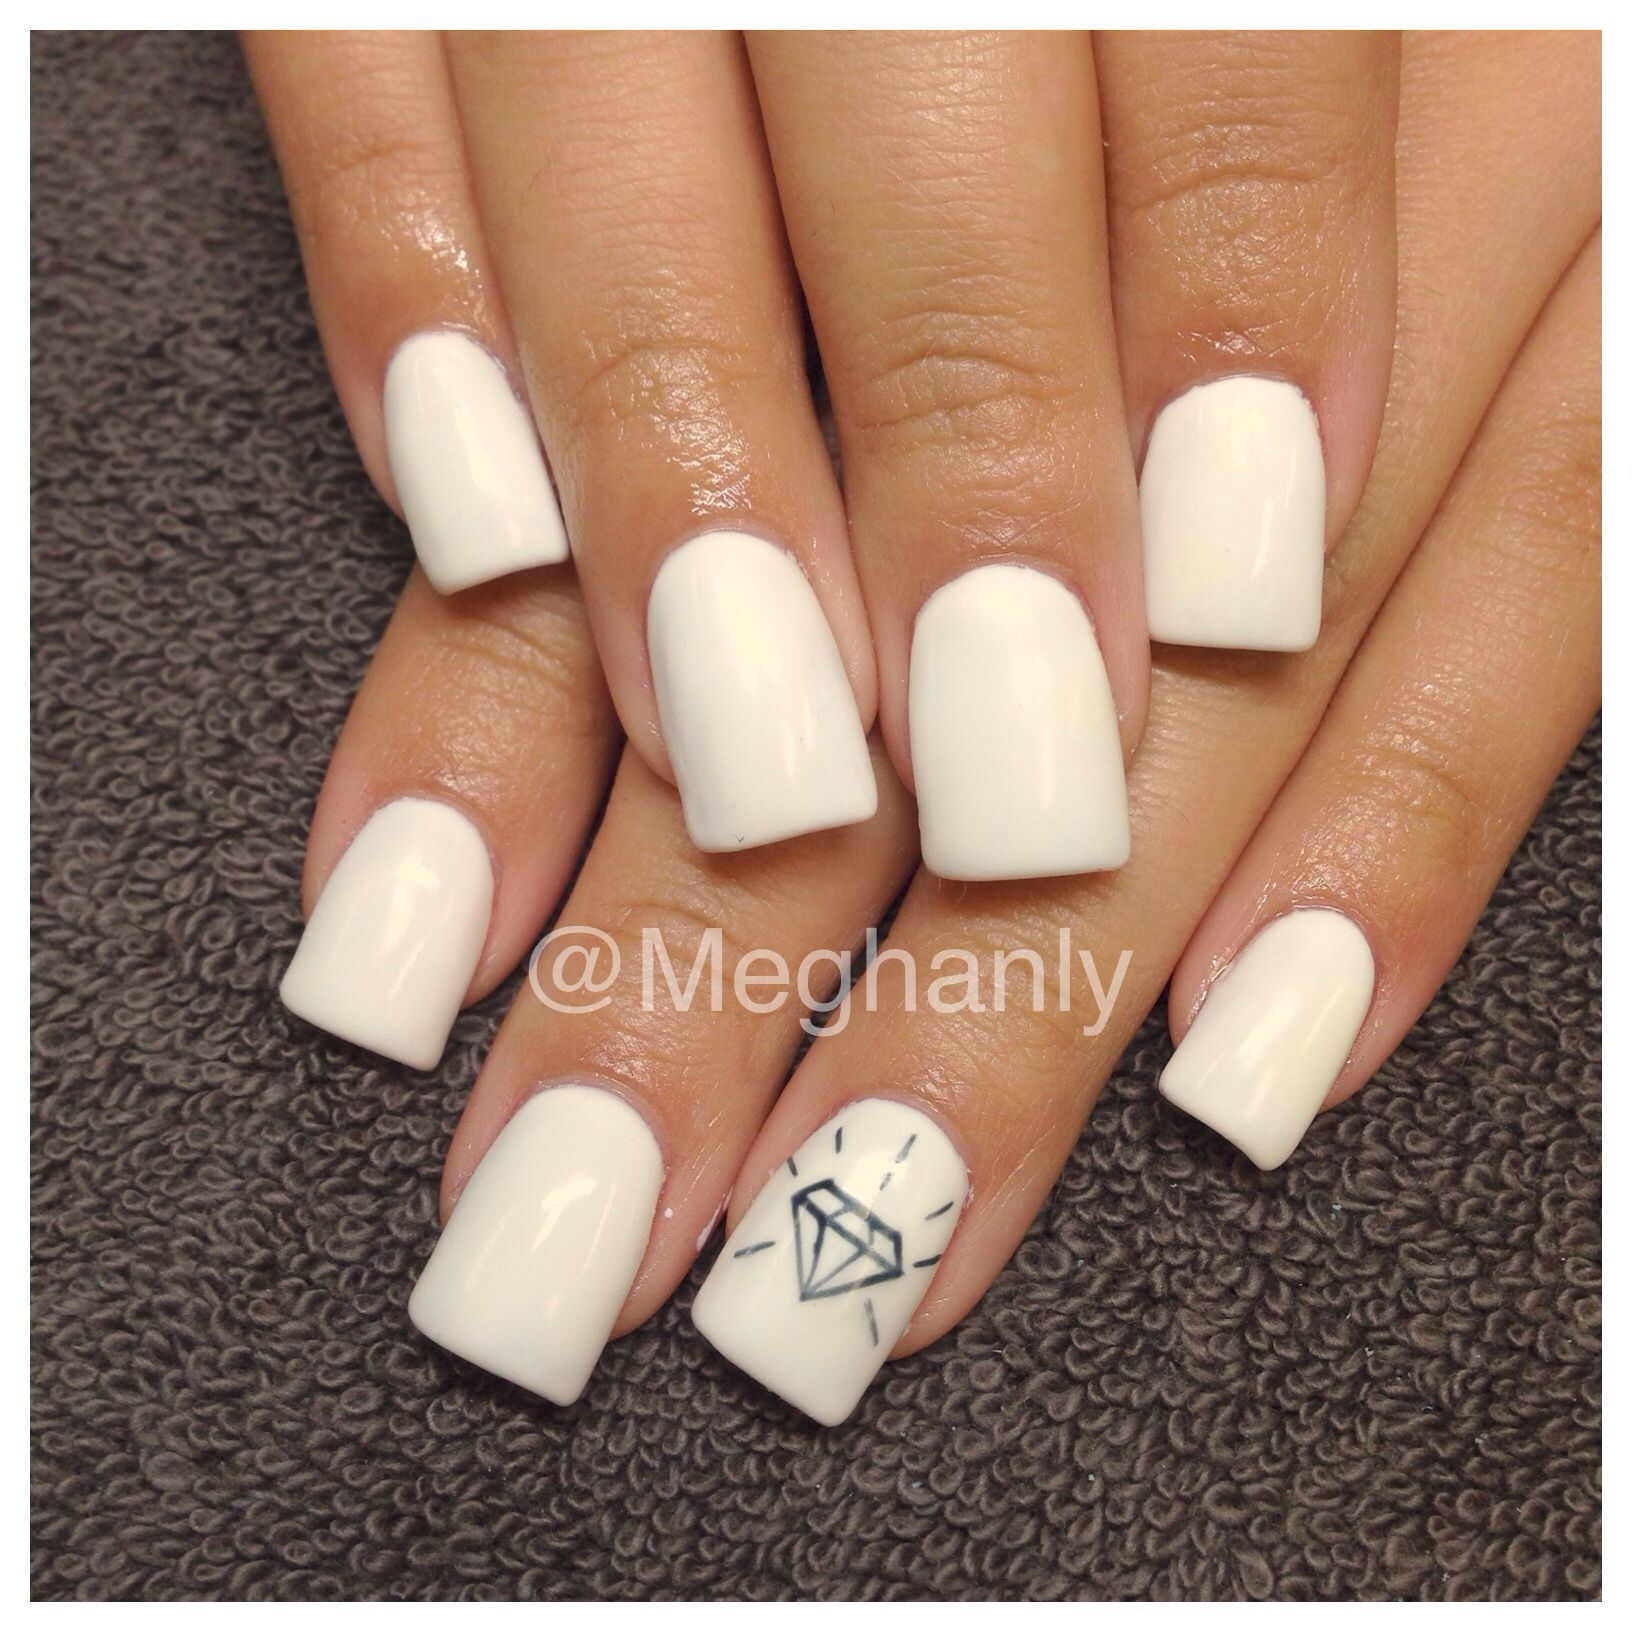 All white nails, diamond nails | Nails by me | Pinterest